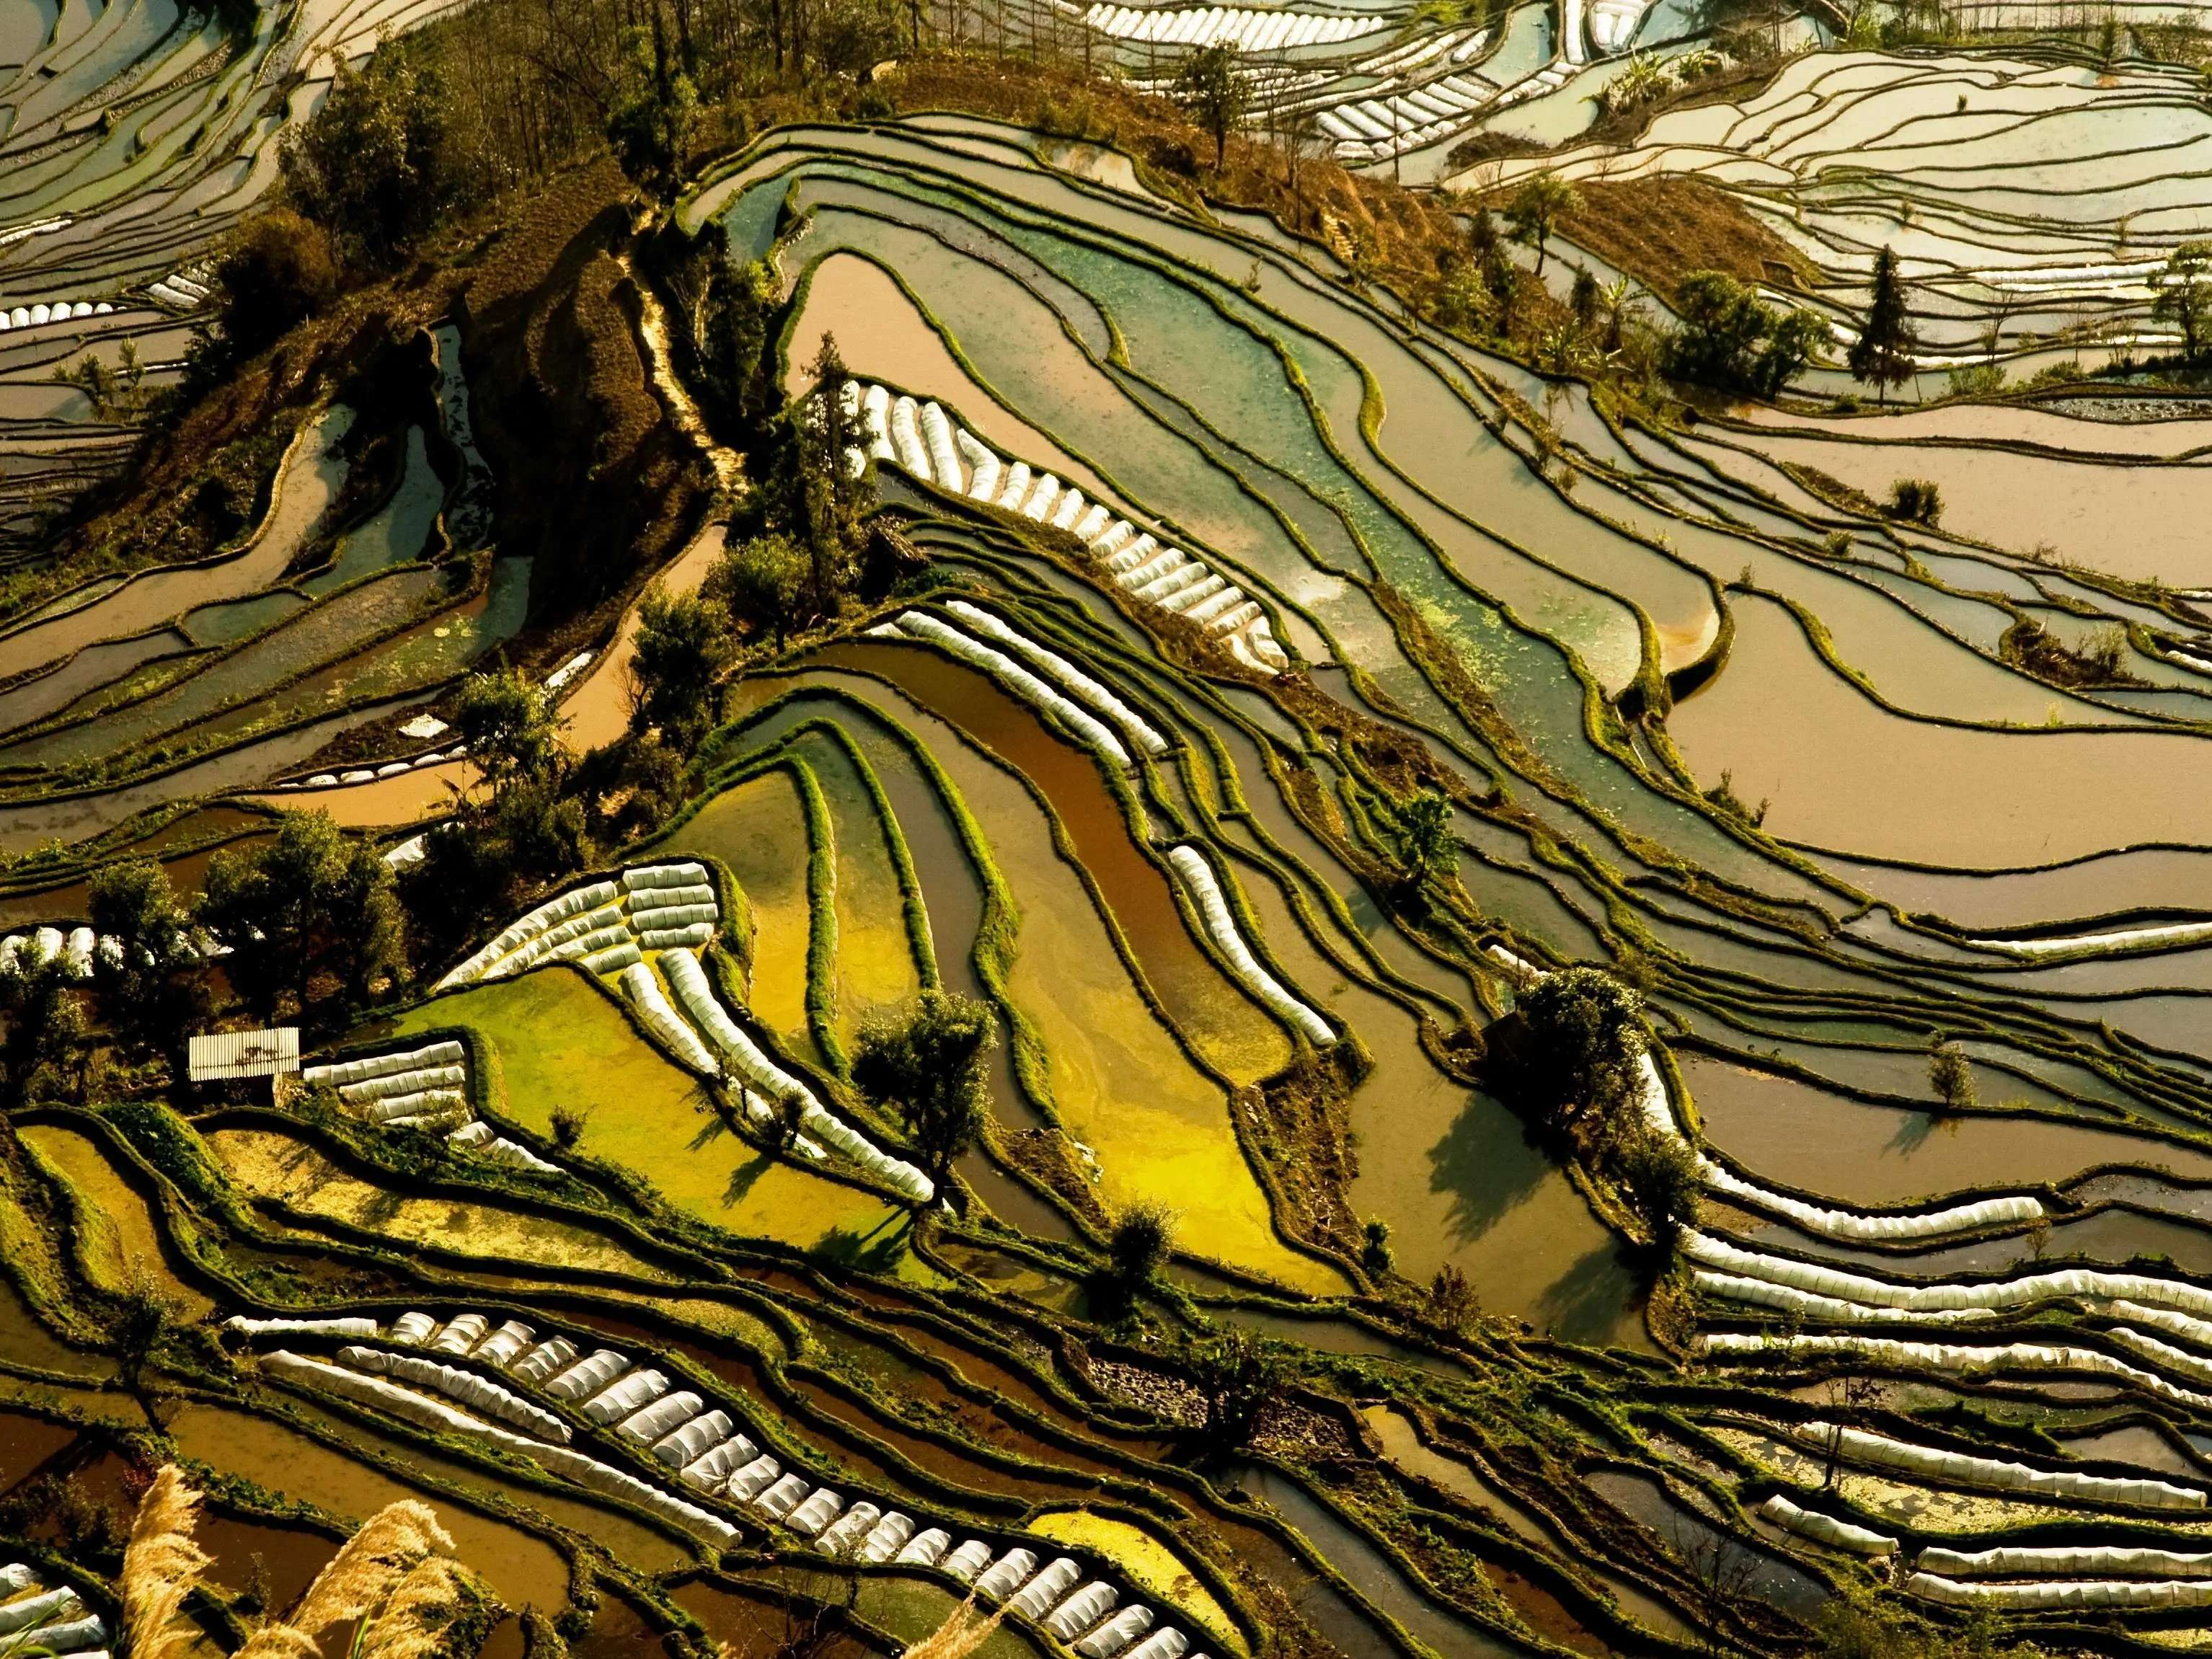 Peer down on the rice terraces of Yunnan, China.